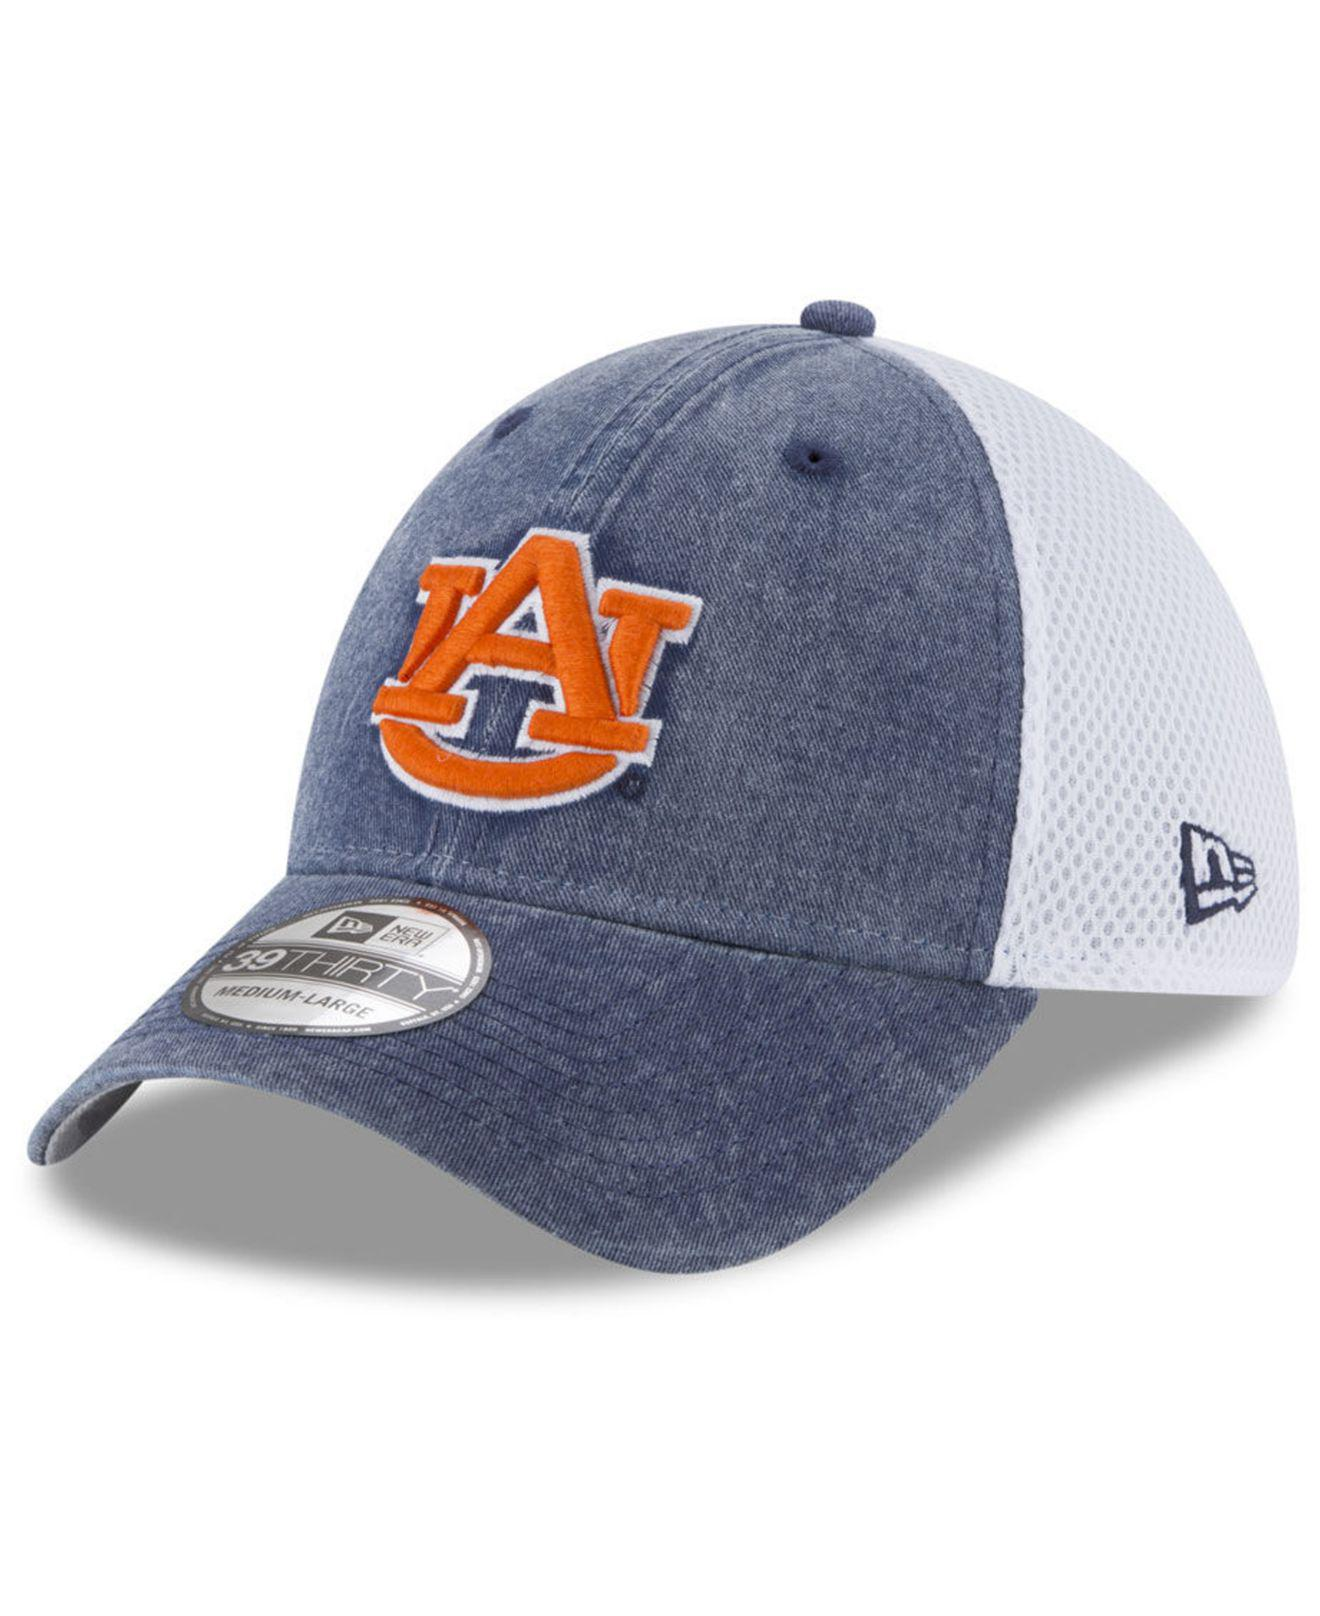 online store 41e48 2ca6b KTZ Auburn Tigers Washed Neo 39thirty Cap in Blue for Men - Lyst